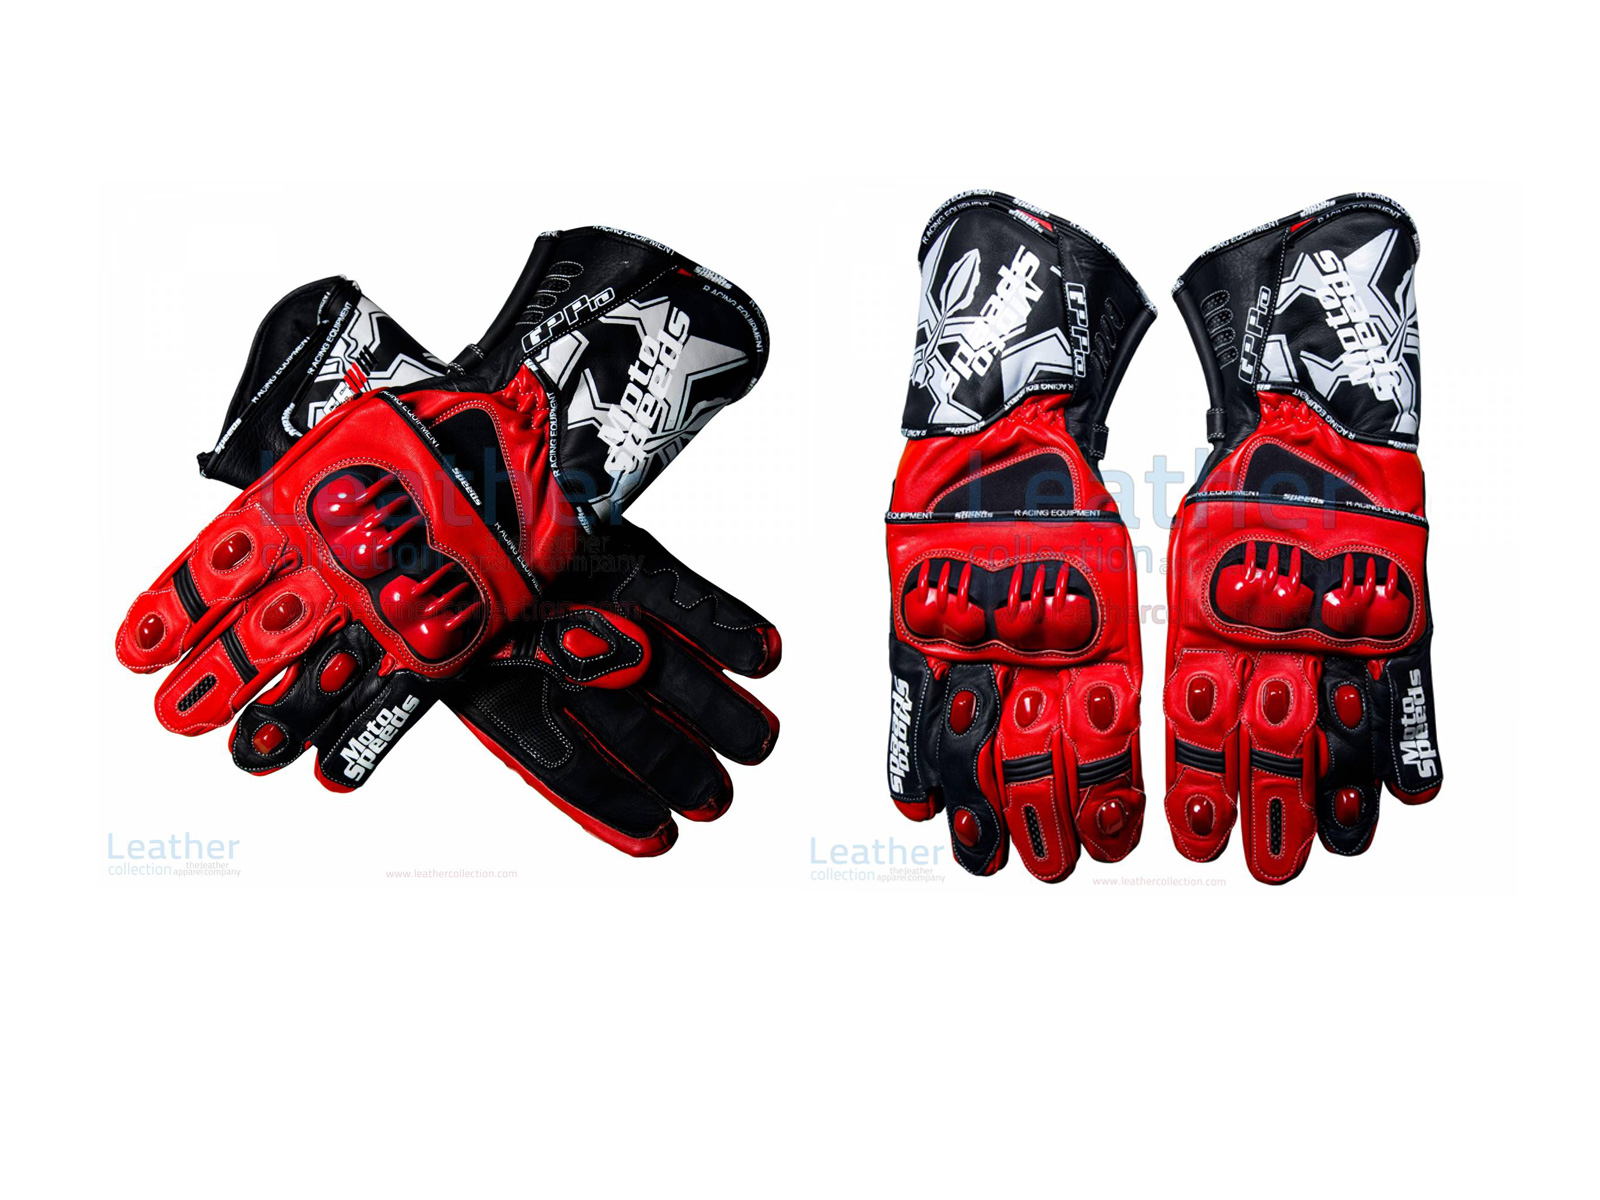 MARQUEZ 2015 – 2016 MOTORBIKE RACING GLOVES